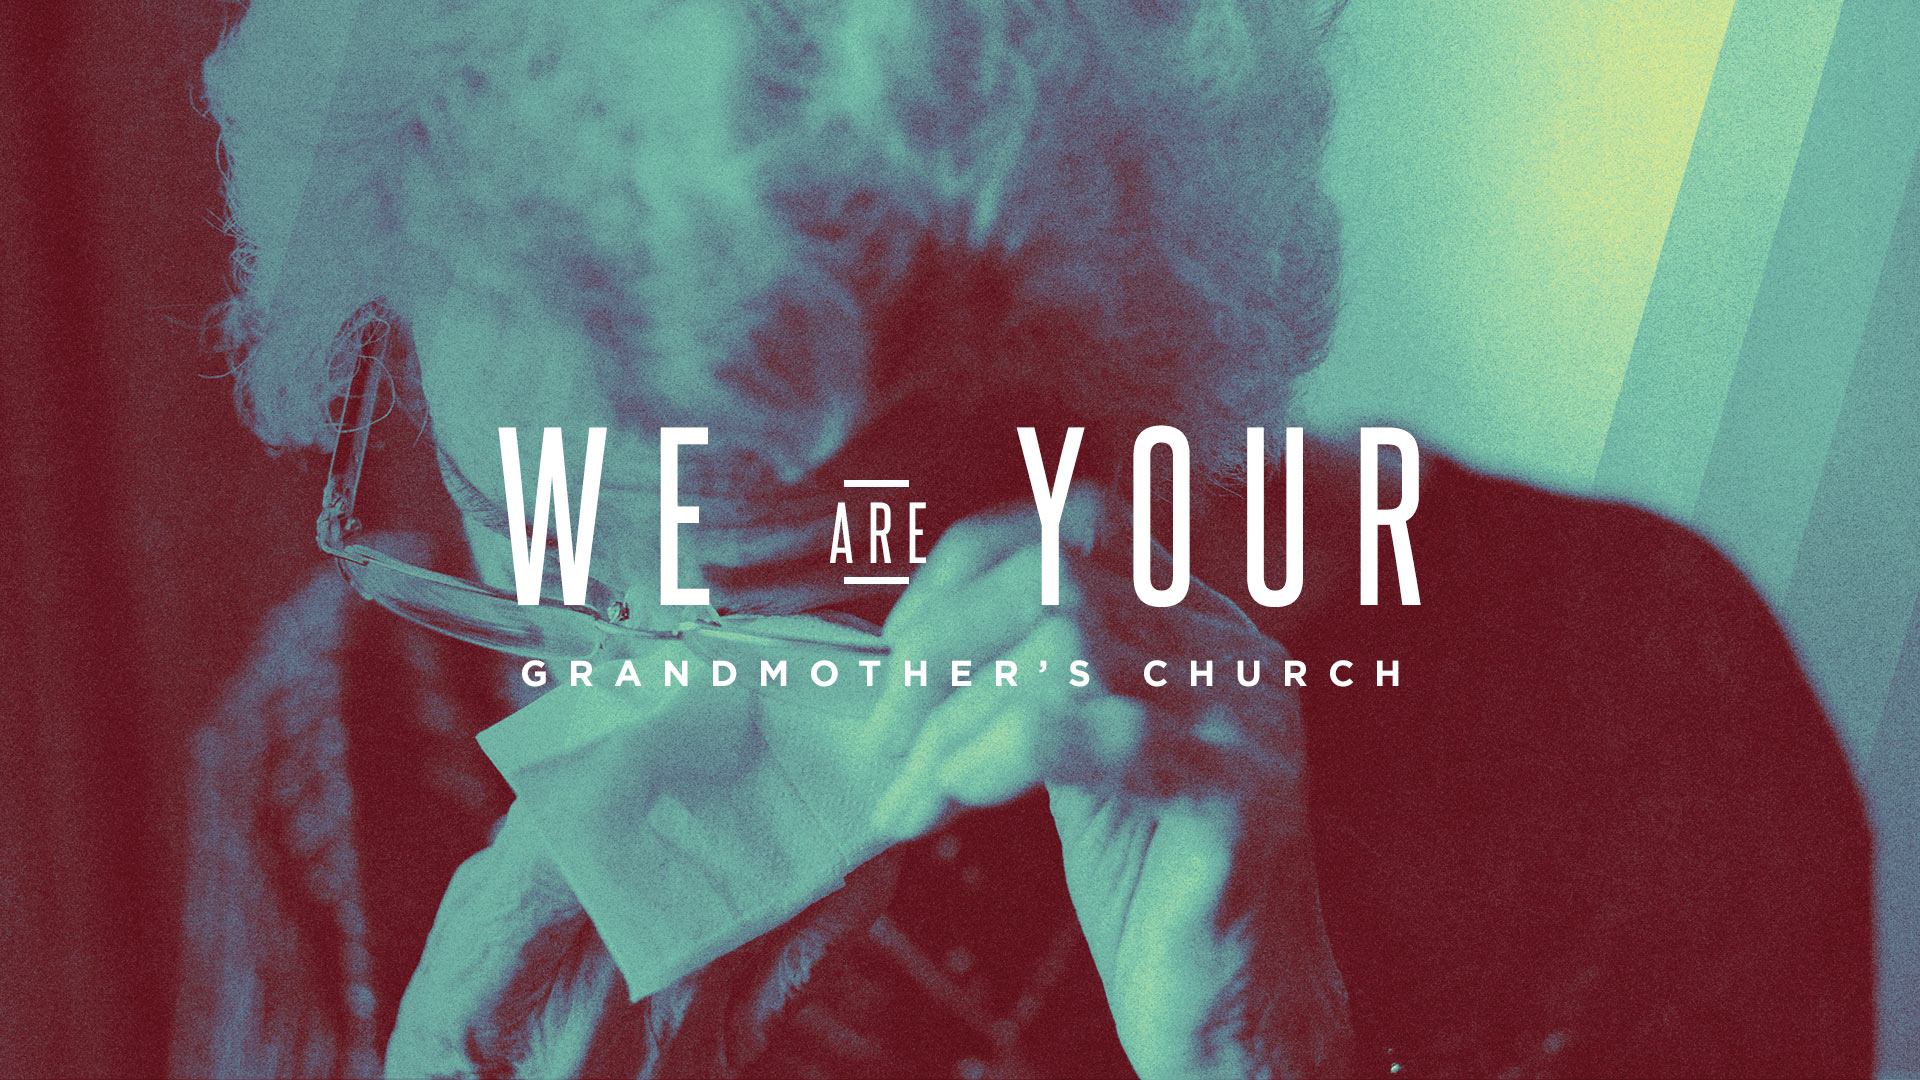 We Are Your Grandmother's Church